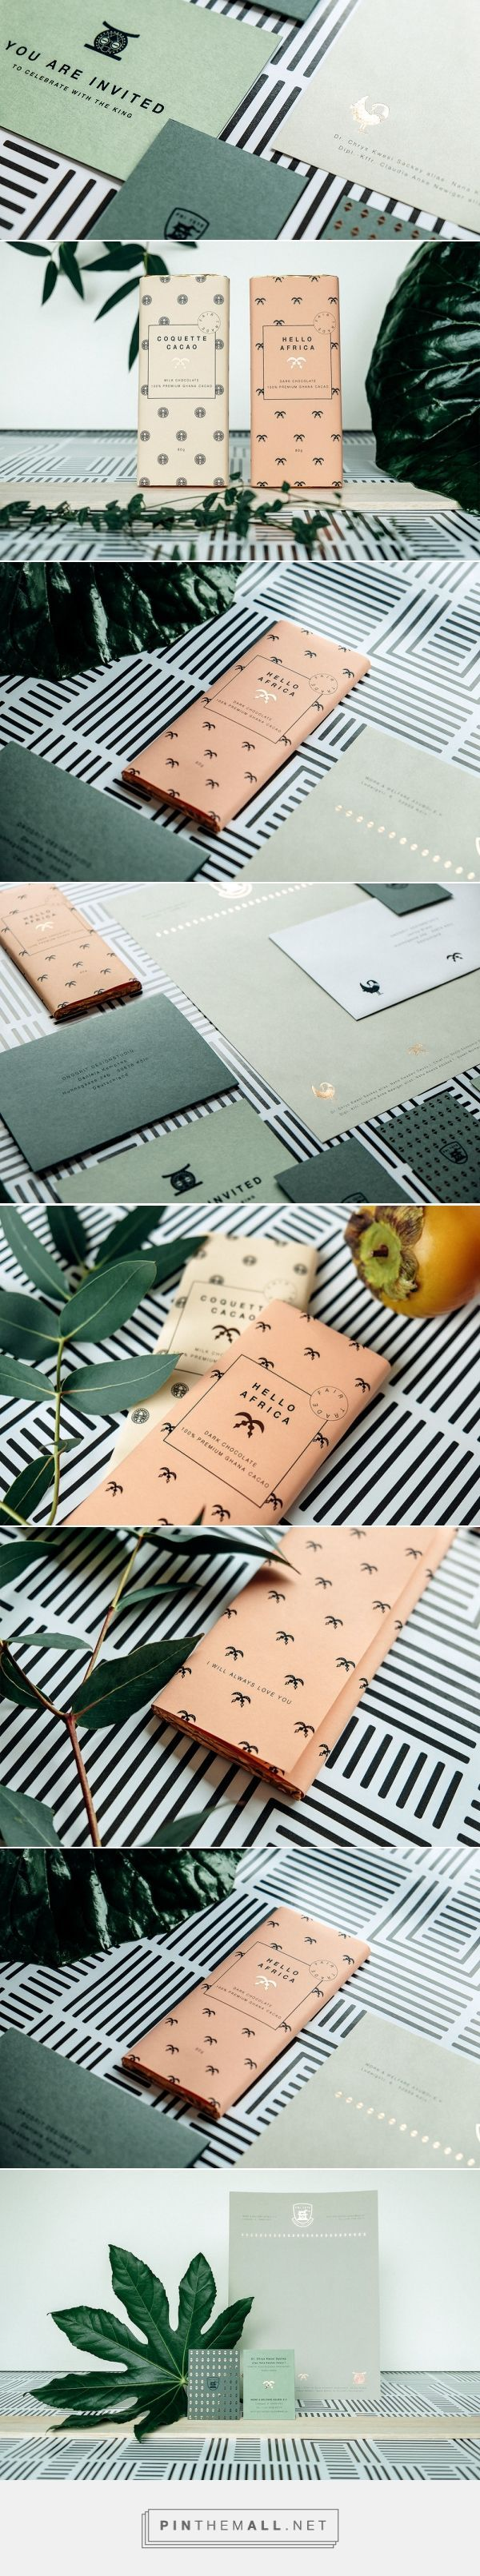 King Nana K. Owusu Stationery — The Dieline - Branding & Packaging Design - created via https://pinthemall.net